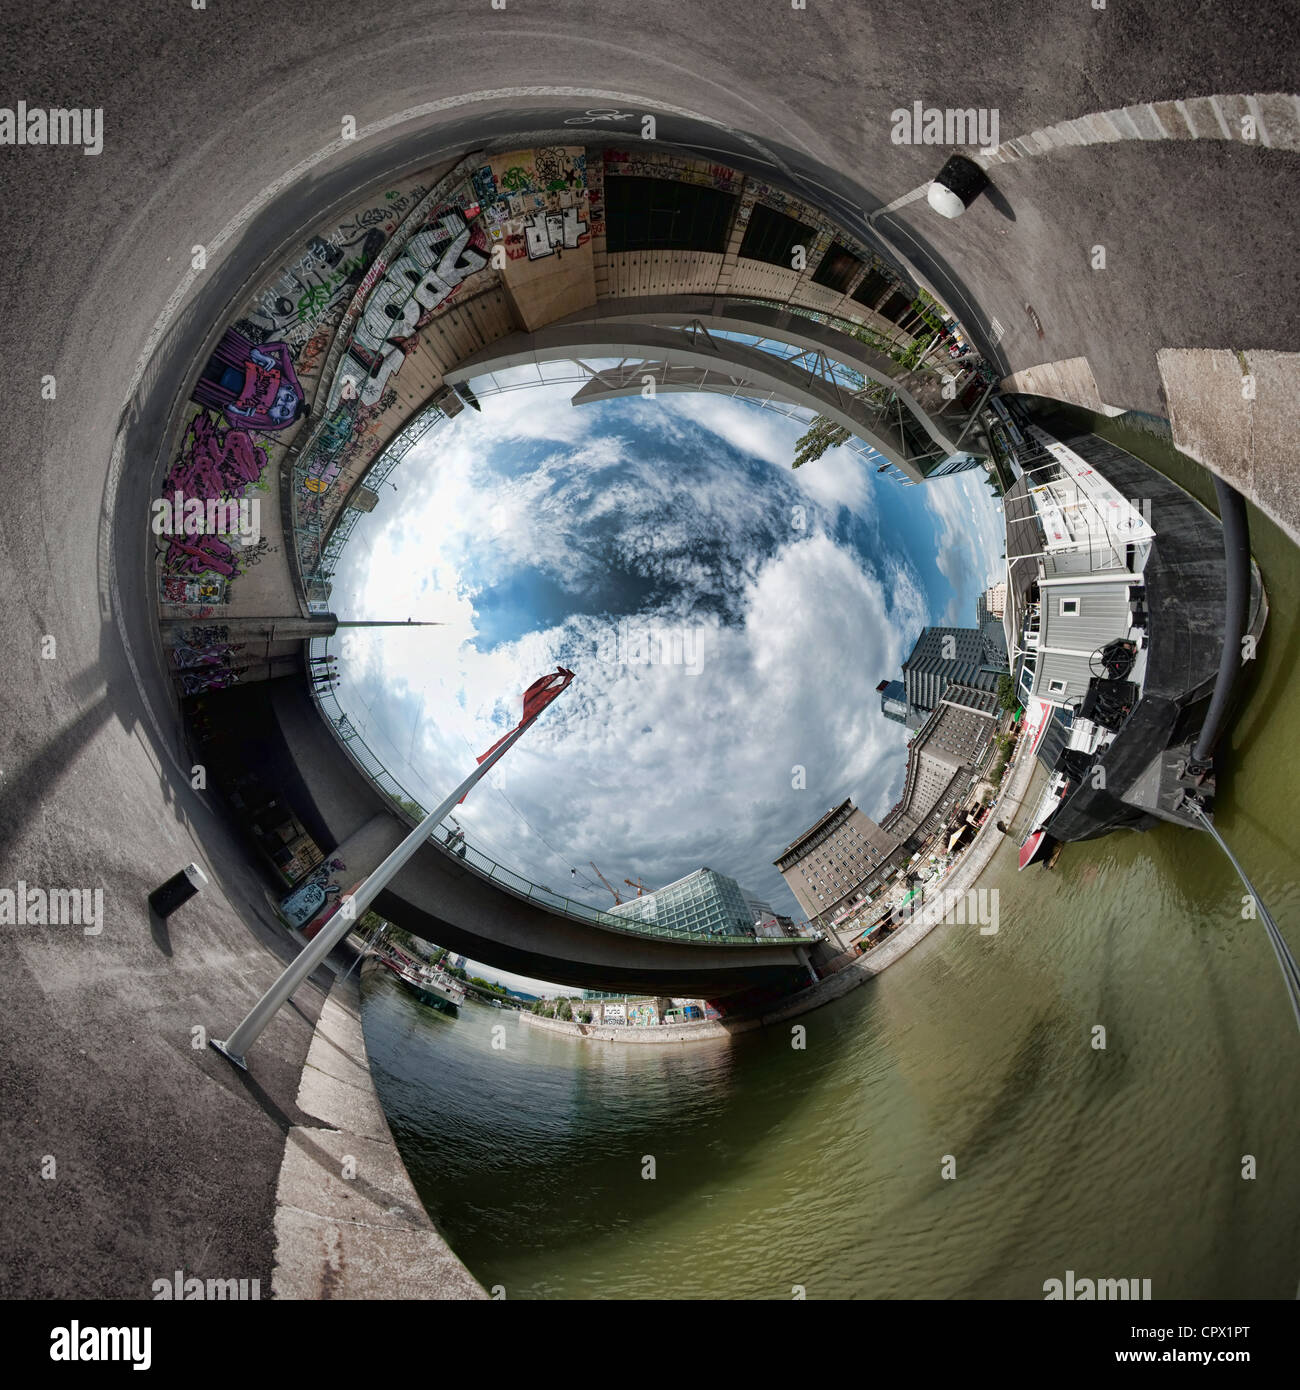 Stereographic image in Vienna, Austria - Stock Image